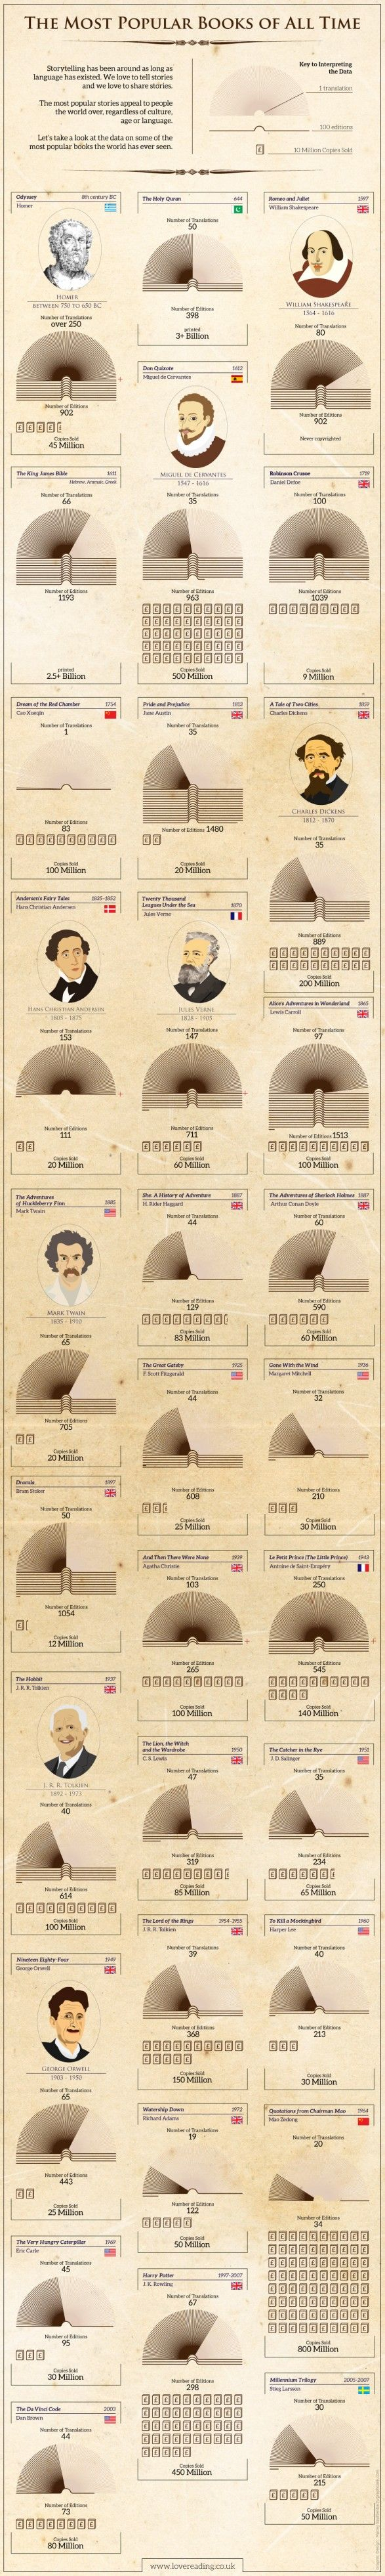 The most popular books of all time